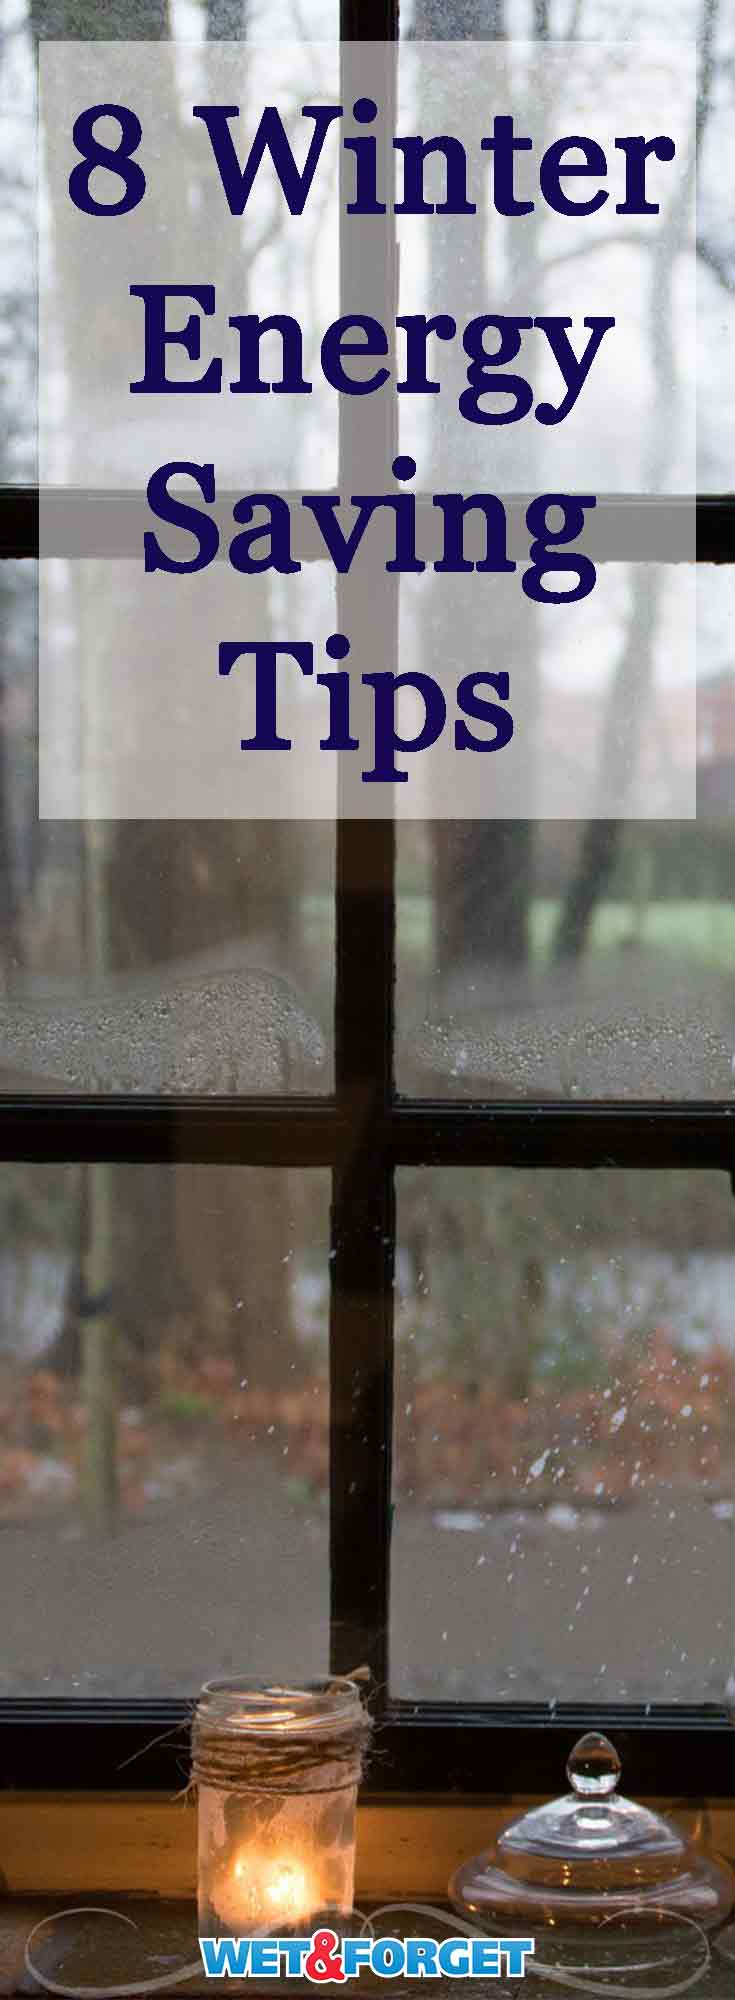 Lower your heating bill and save energy this winter with these simple tips!